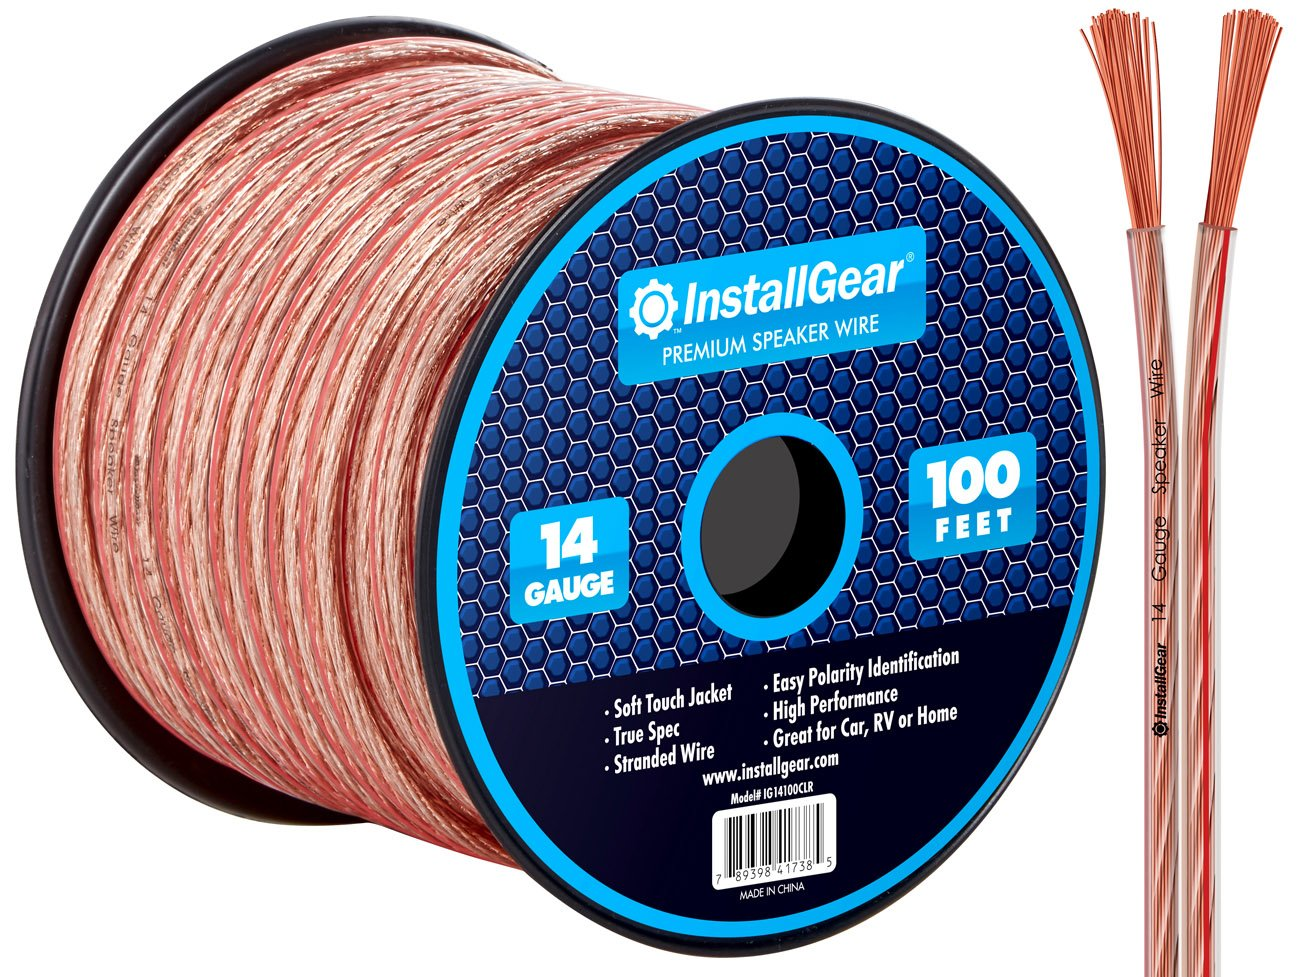 InstallGear 14 Gauge AWG 100ft Speaker Wire Cable - Clear by InstallGear